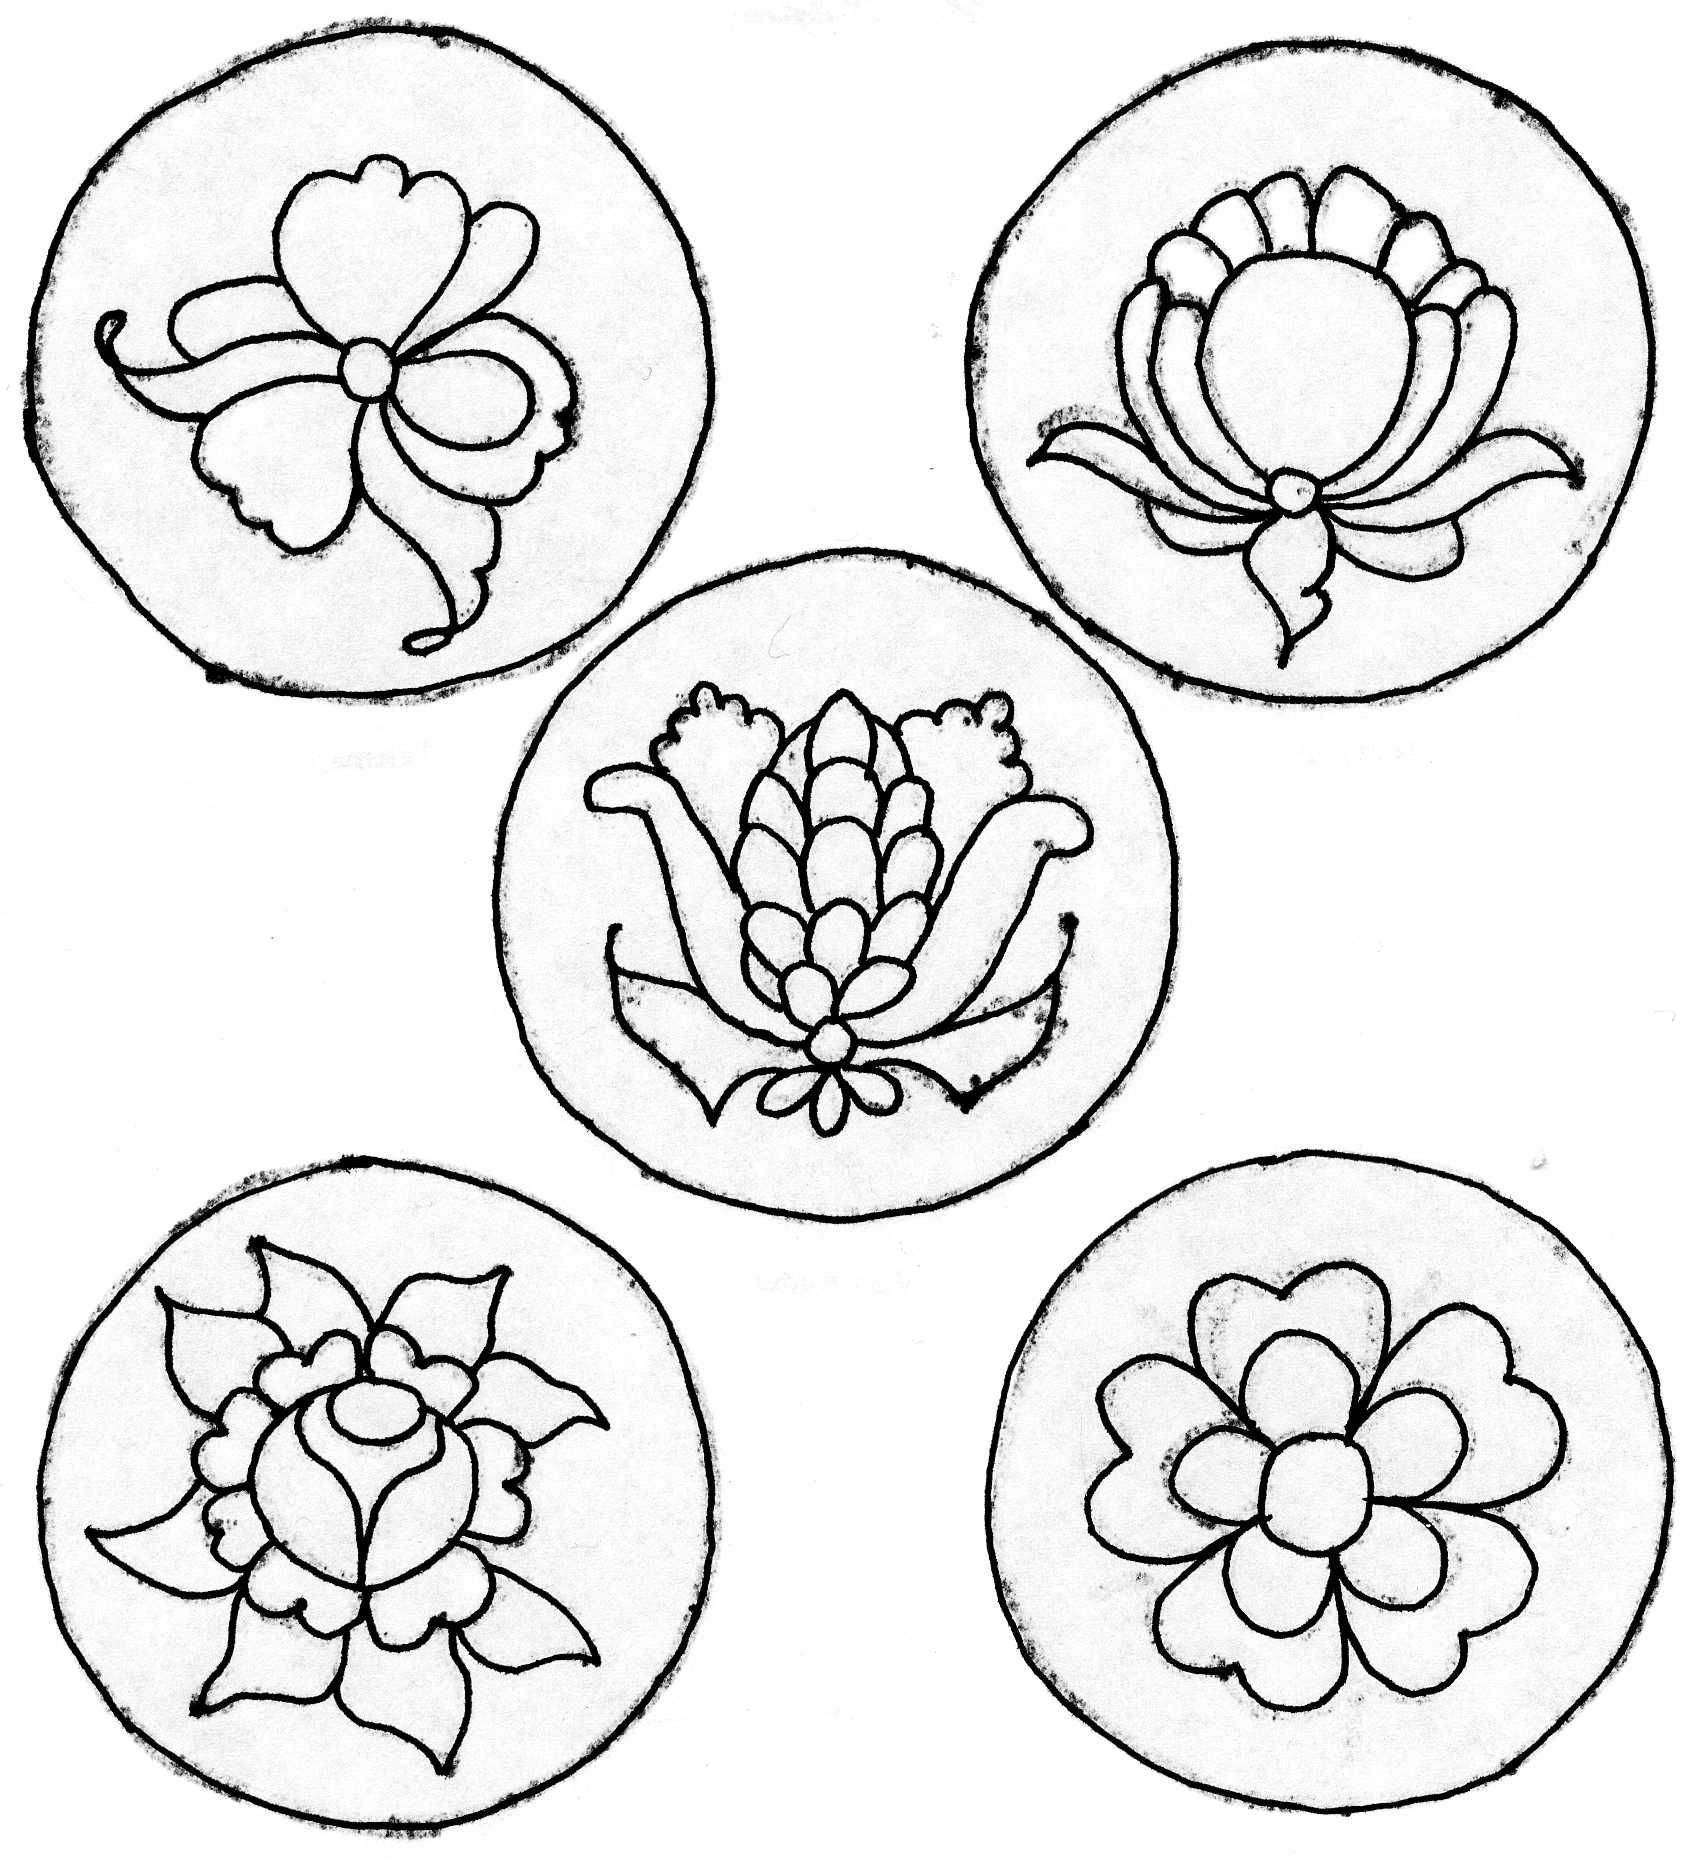 1698x1859 Rosmaling Coloring Pages Patterns, Embroidery And Embroidery Motifs